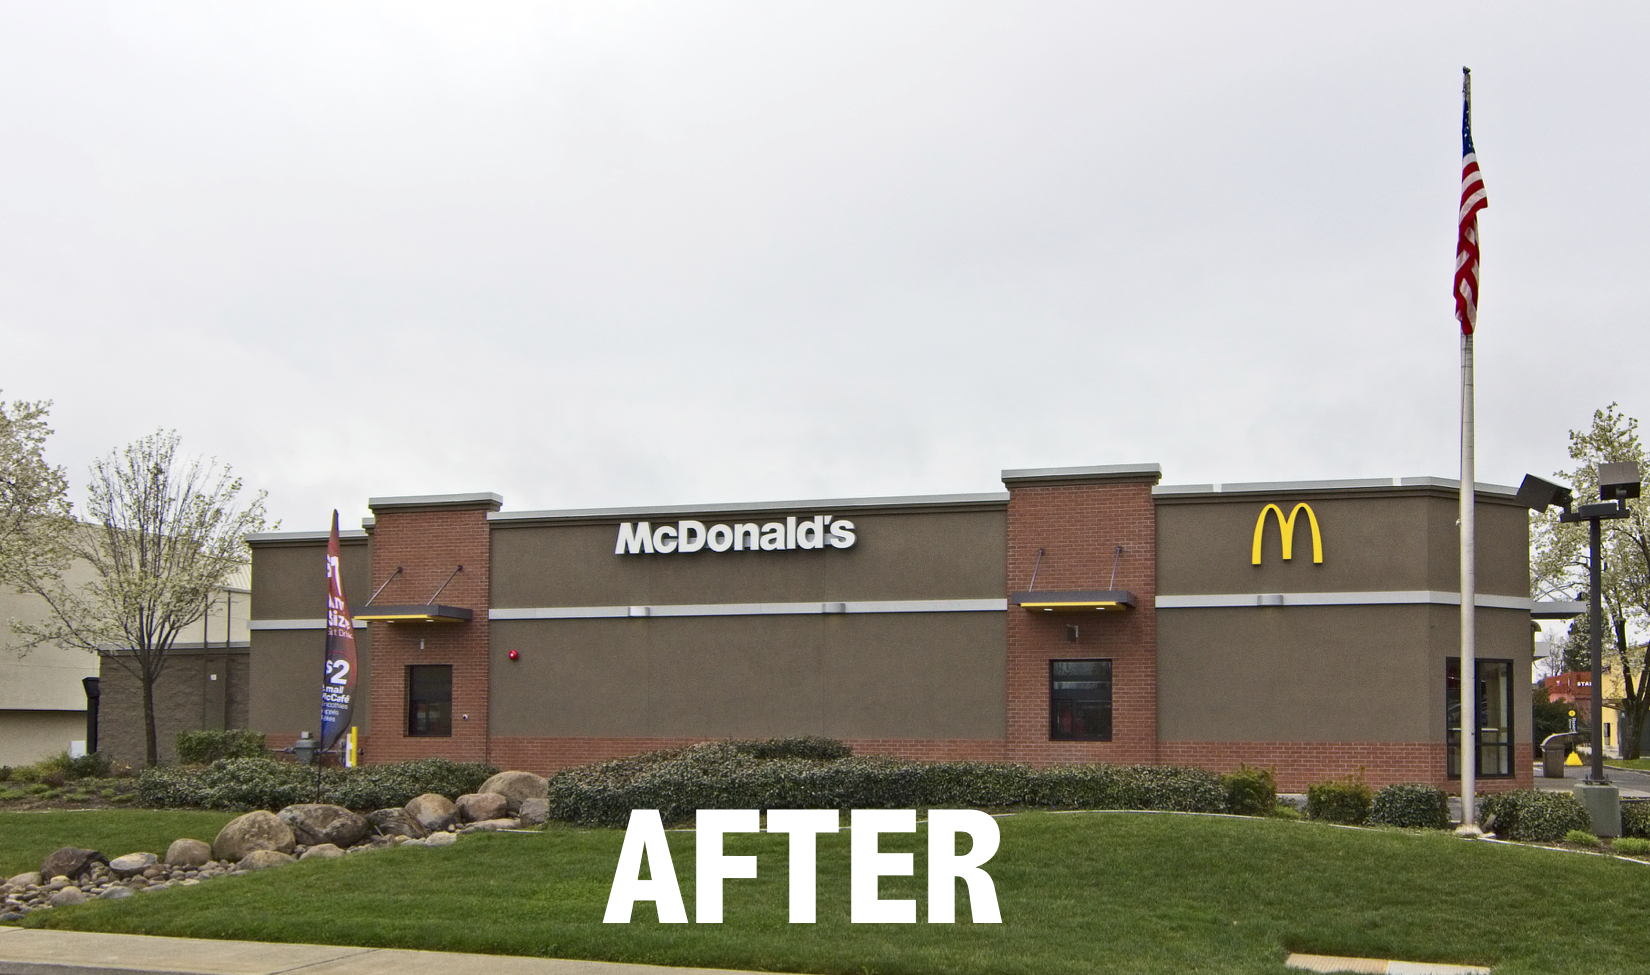 McDs after.jpg